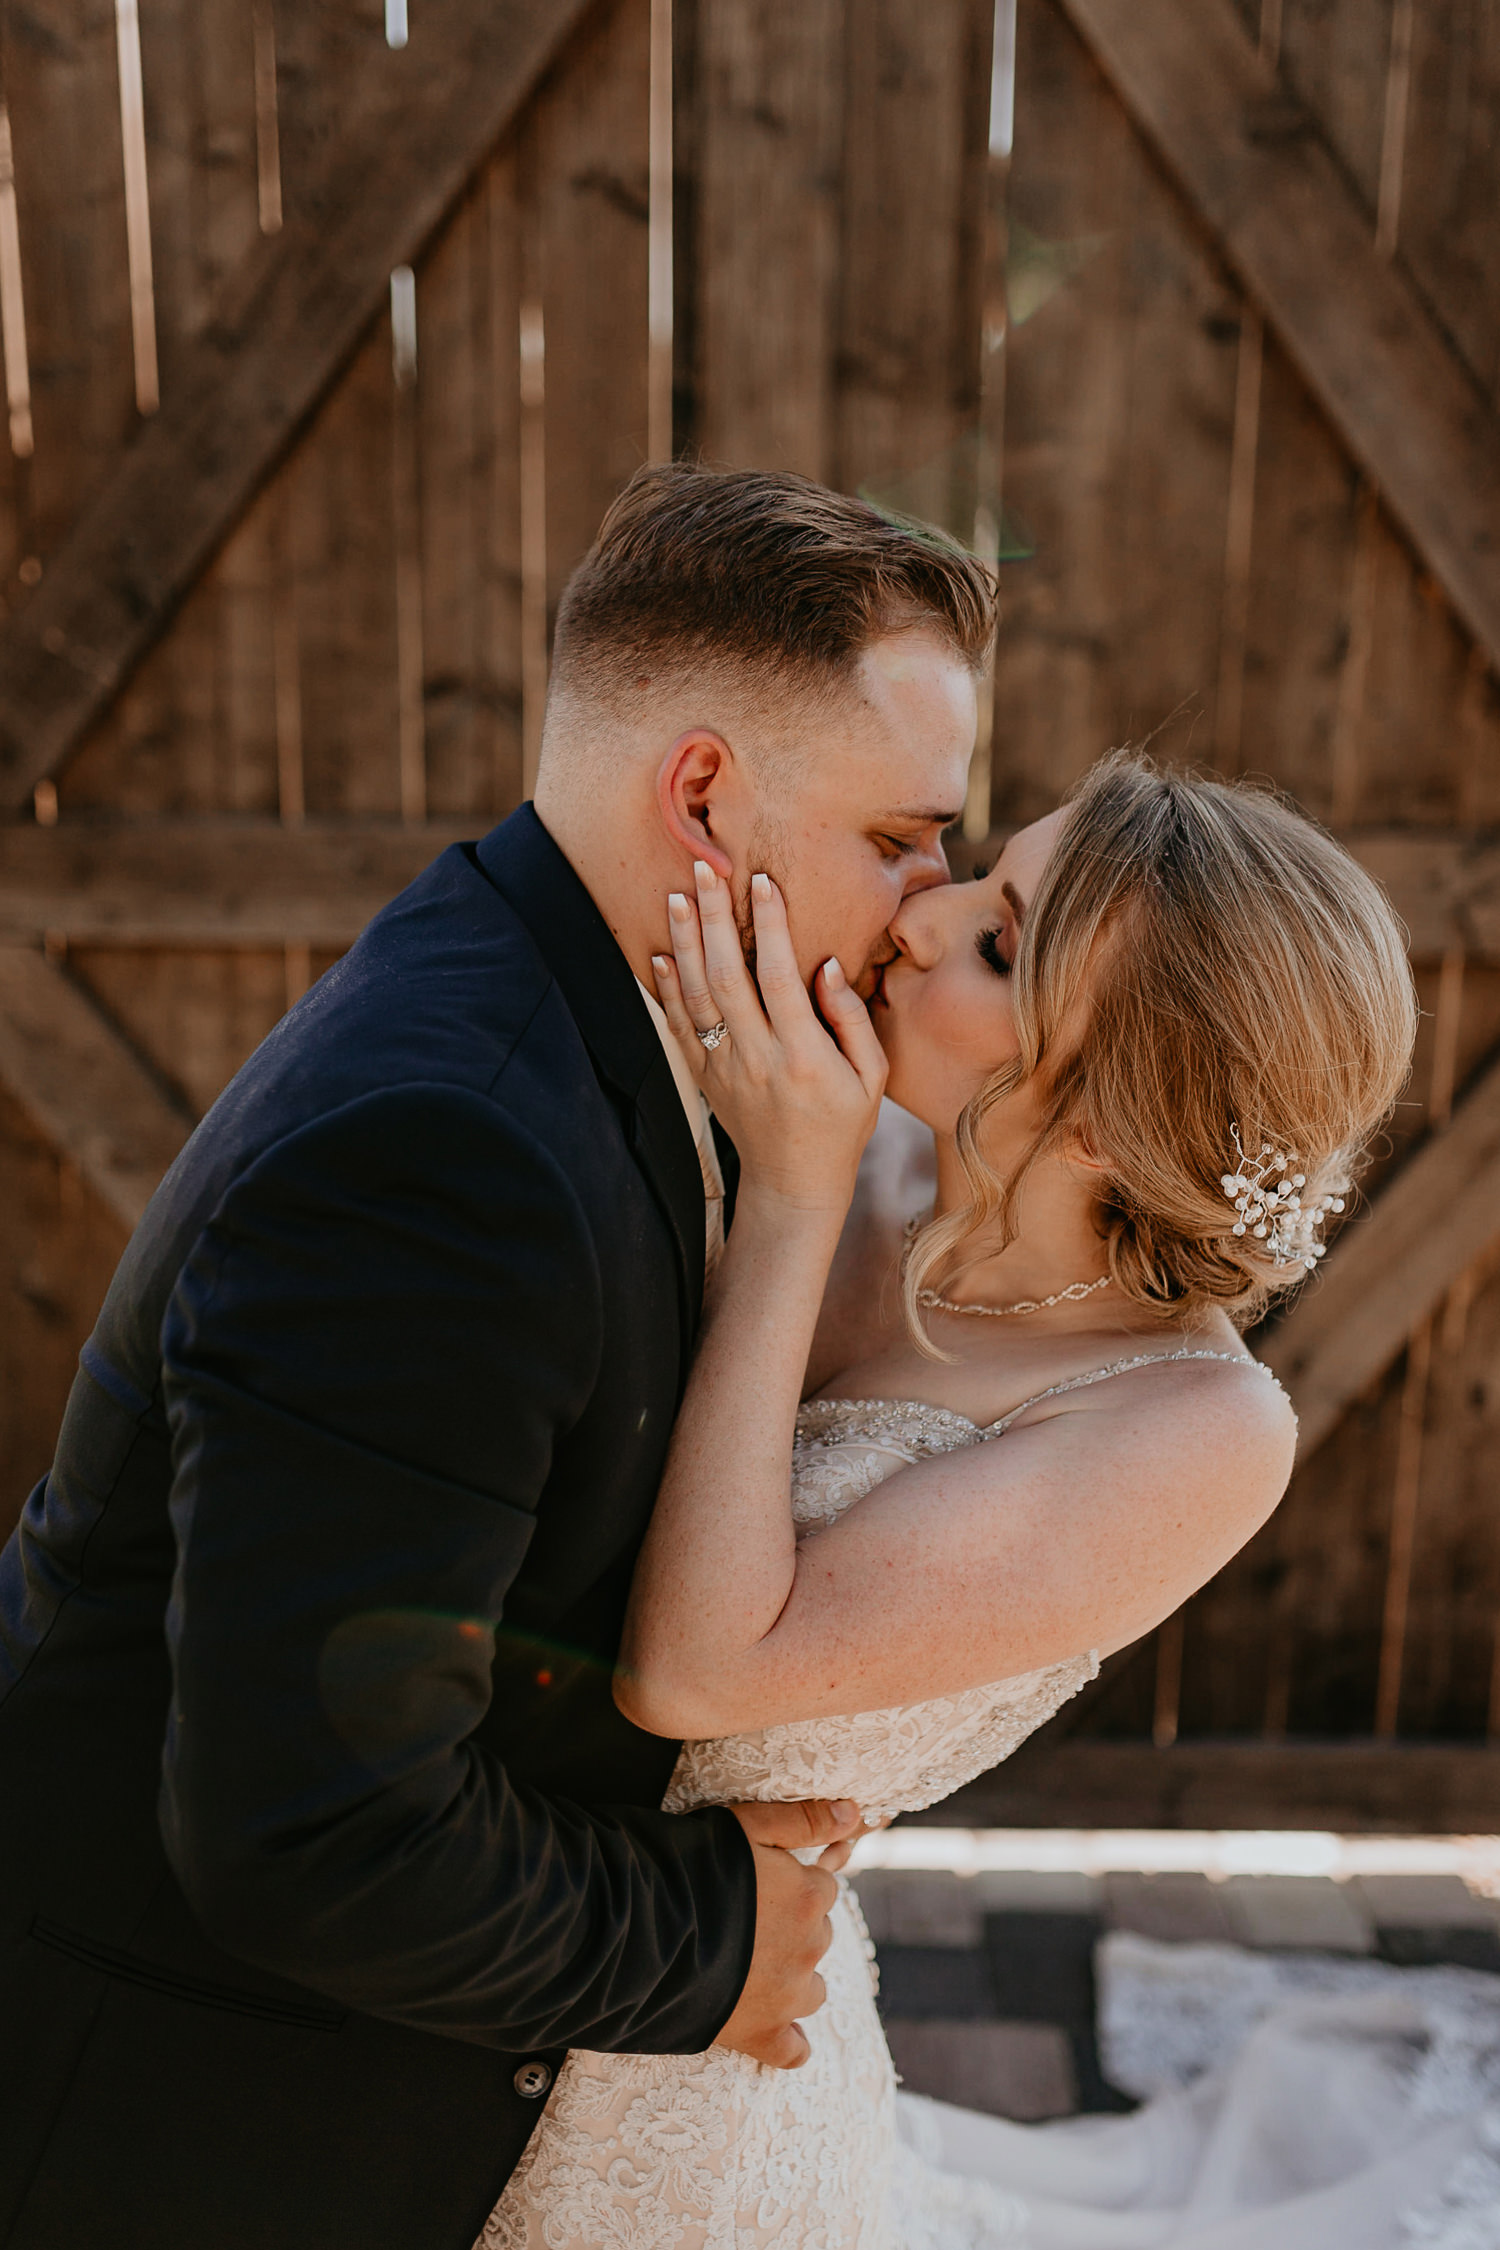 newlyweds kissing, brides hand on grooms face, in front of wooden barn doors